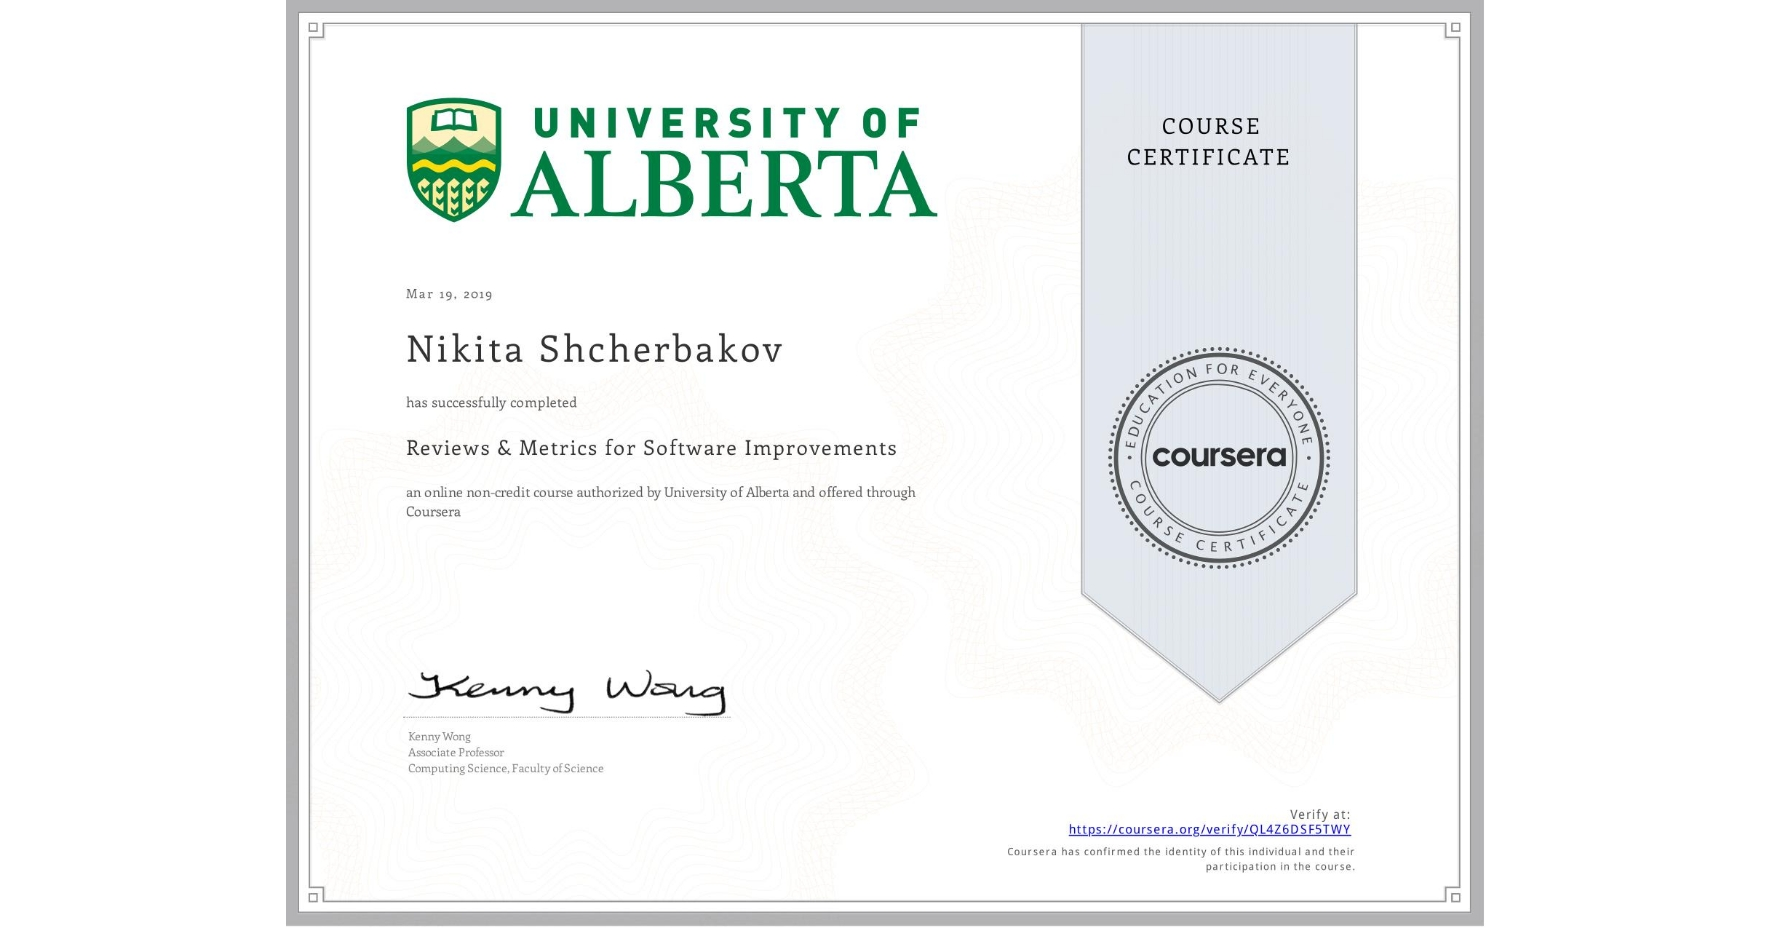 View certificate for Nikita Shcherbakov, Reviews & Metrics for Software Improvements, an online non-credit course authorized by University of Alberta and offered through Coursera